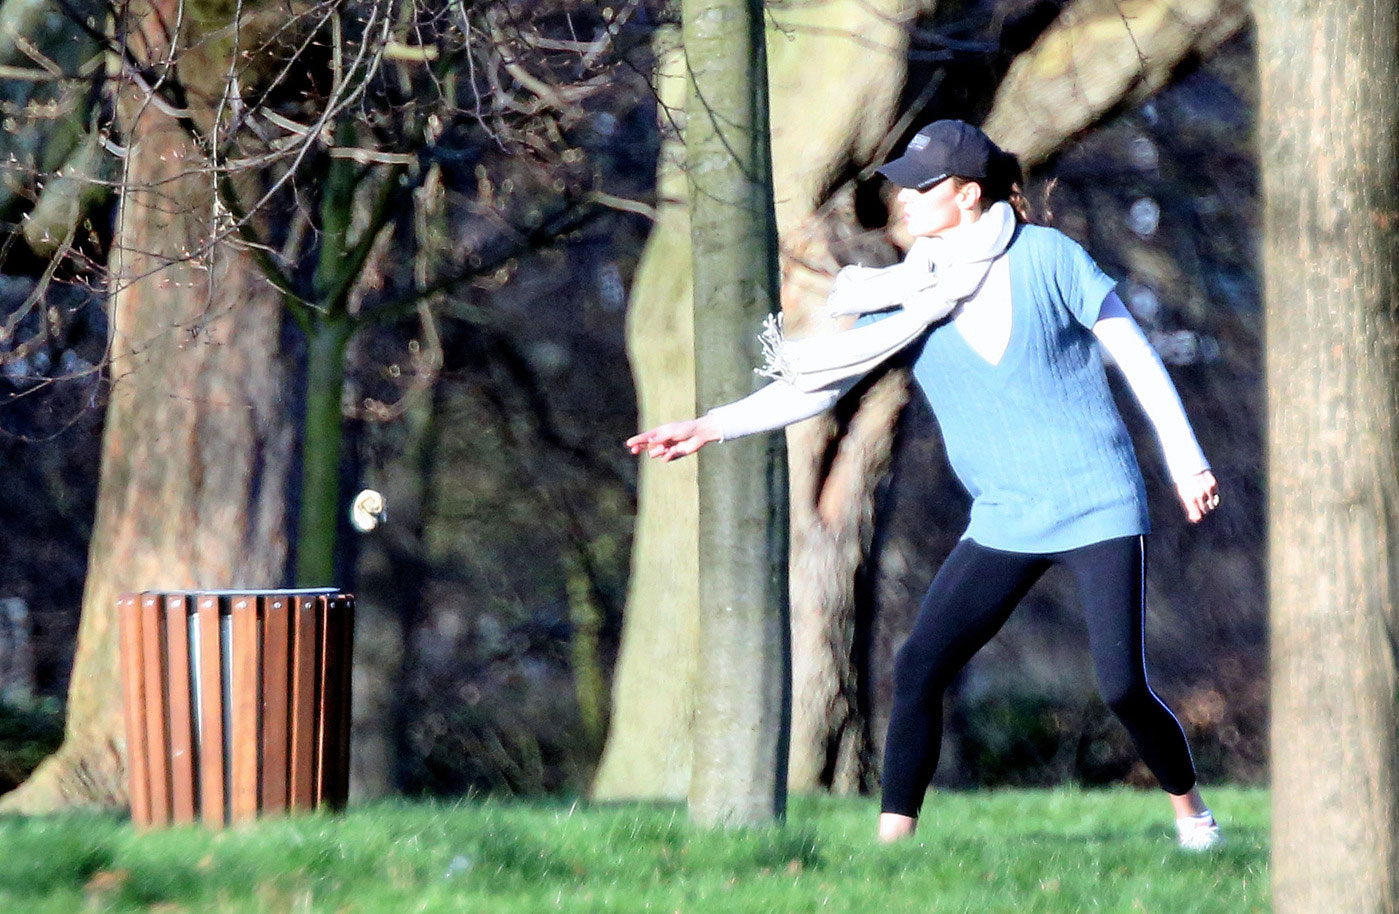 PREMIUM EXCLUSIVE: A DO-GOOD PRINCESS! Catherine, Duchess of Cambridge stops to pick up some trash and throw it away as she takes a stroll with baby George in a London park